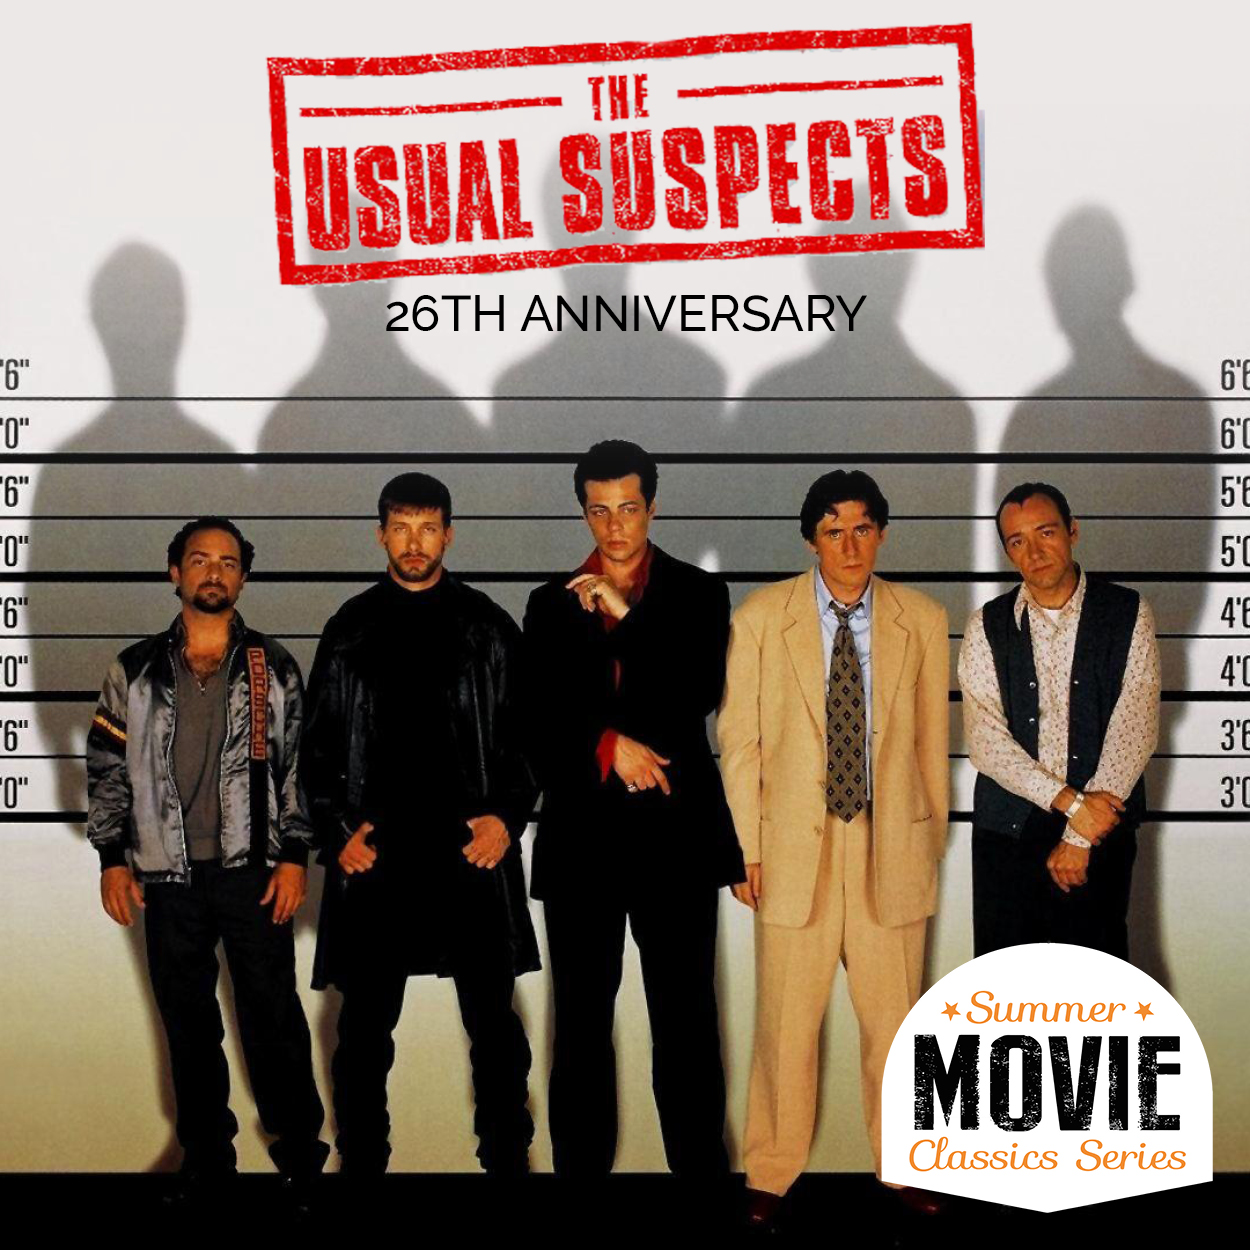 Summer Movie Classics | The Usual Suspects | 26th Anniversary